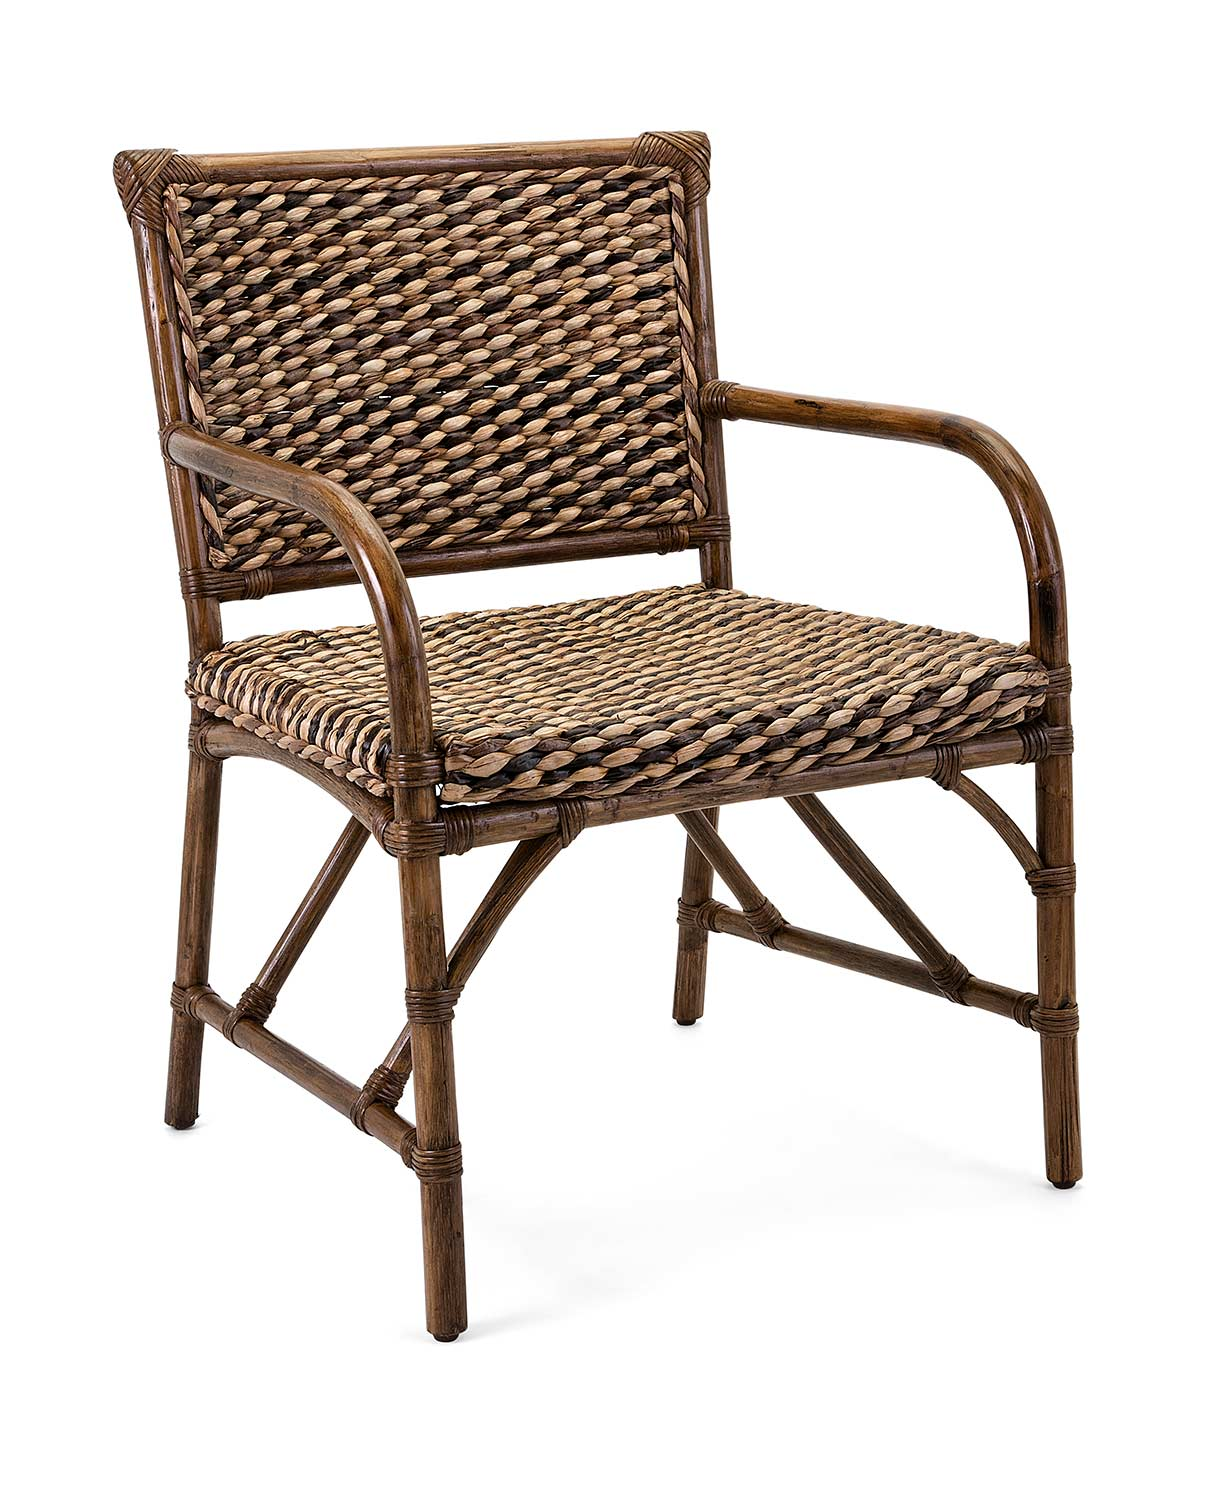 seagrass arm chair burlesque dance moves imax boracay rattan im 14083 at homelement